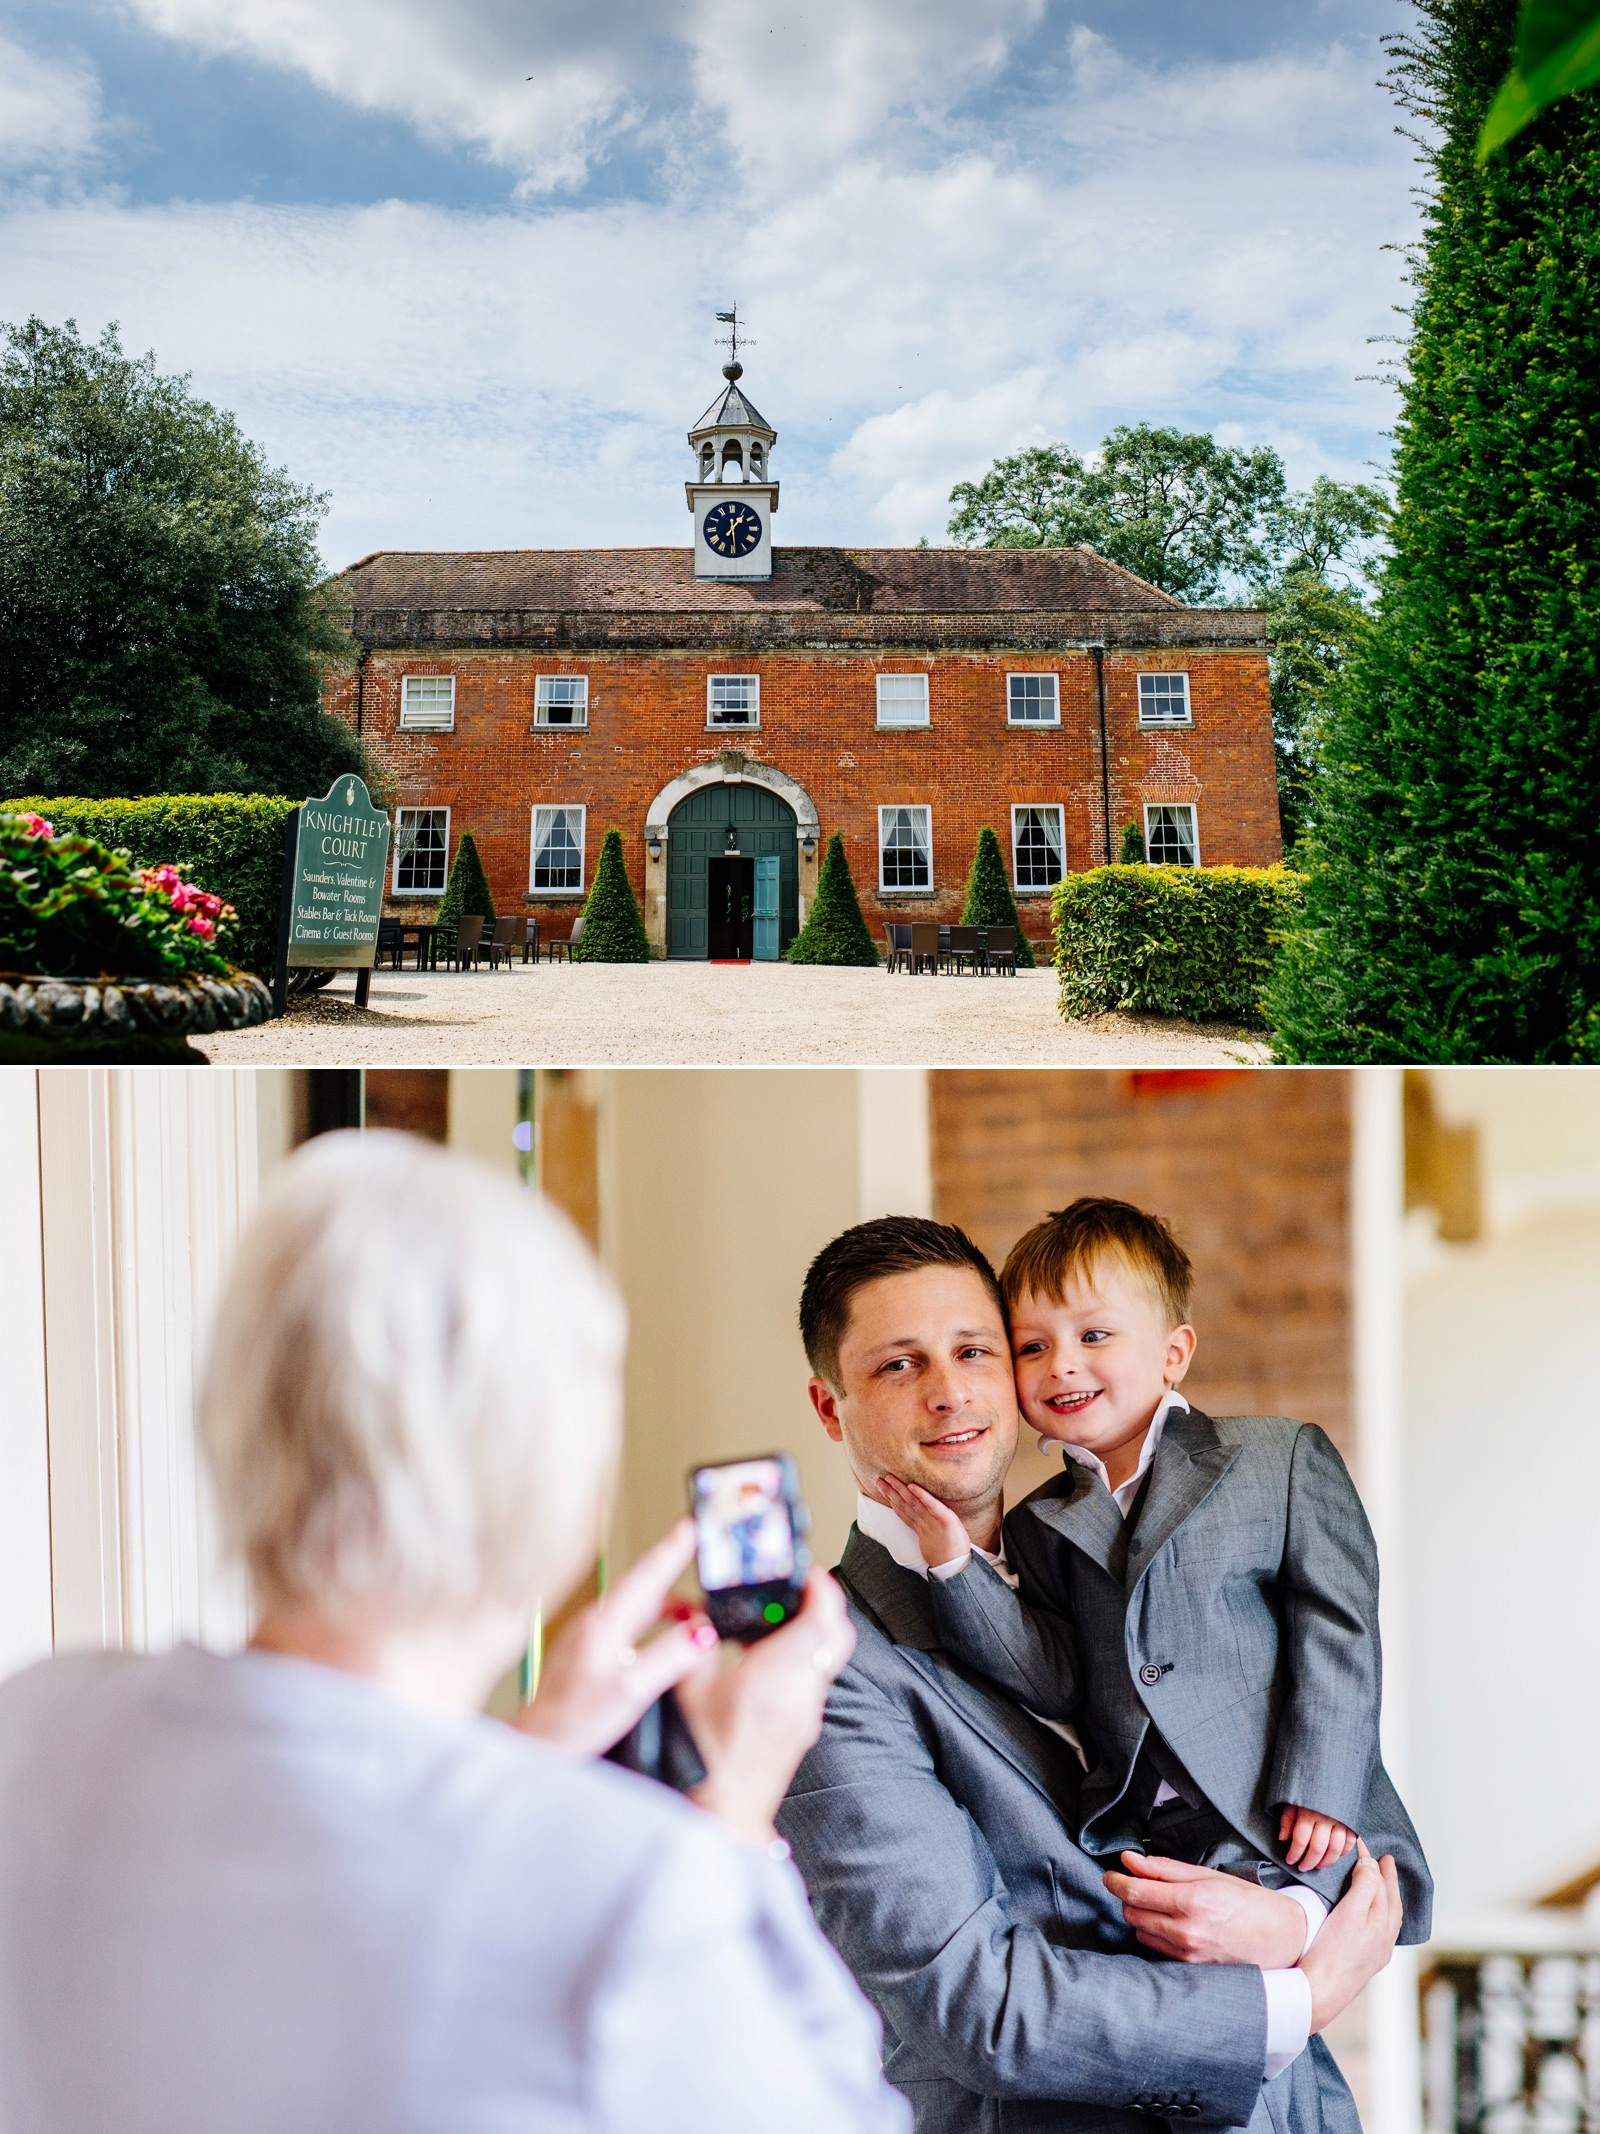 Fawsley Hall Wedding Photographer - Beth & Paul_0001